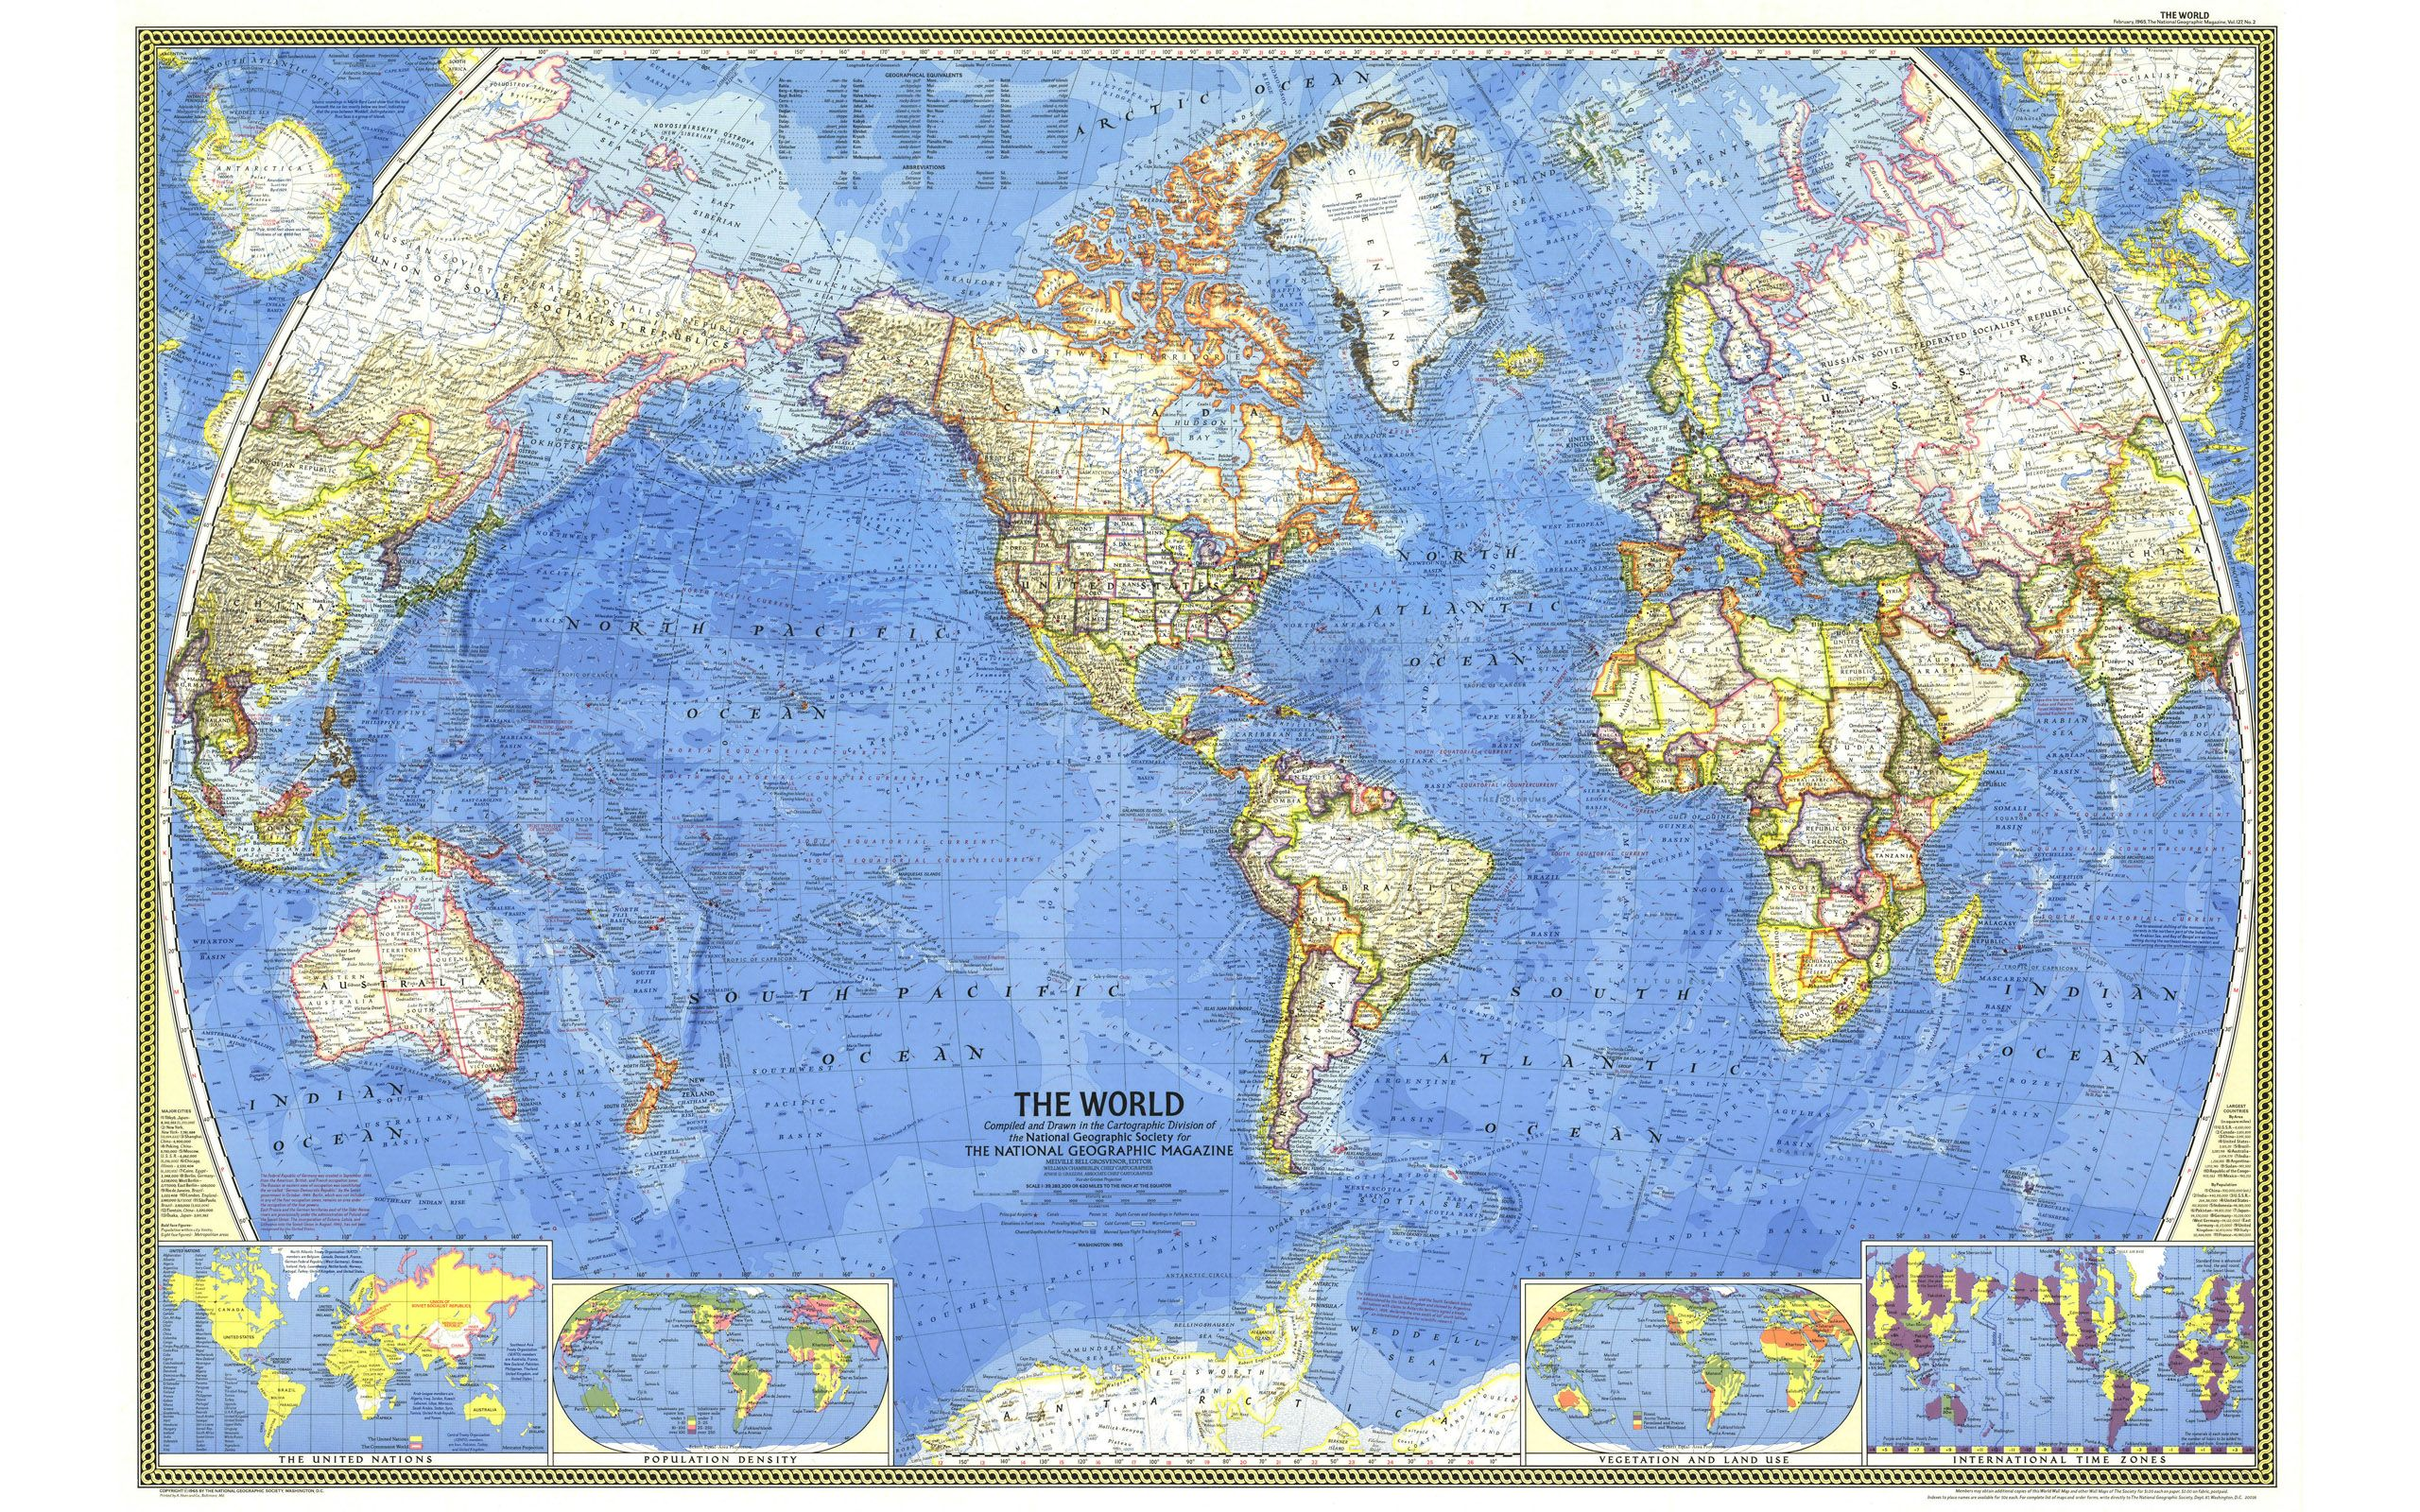 National geographic world map wallpaper finn morgan room canvas yardage antique world map fabric on silk sewing crafting maps on silk poster gumiabroncs Gallery